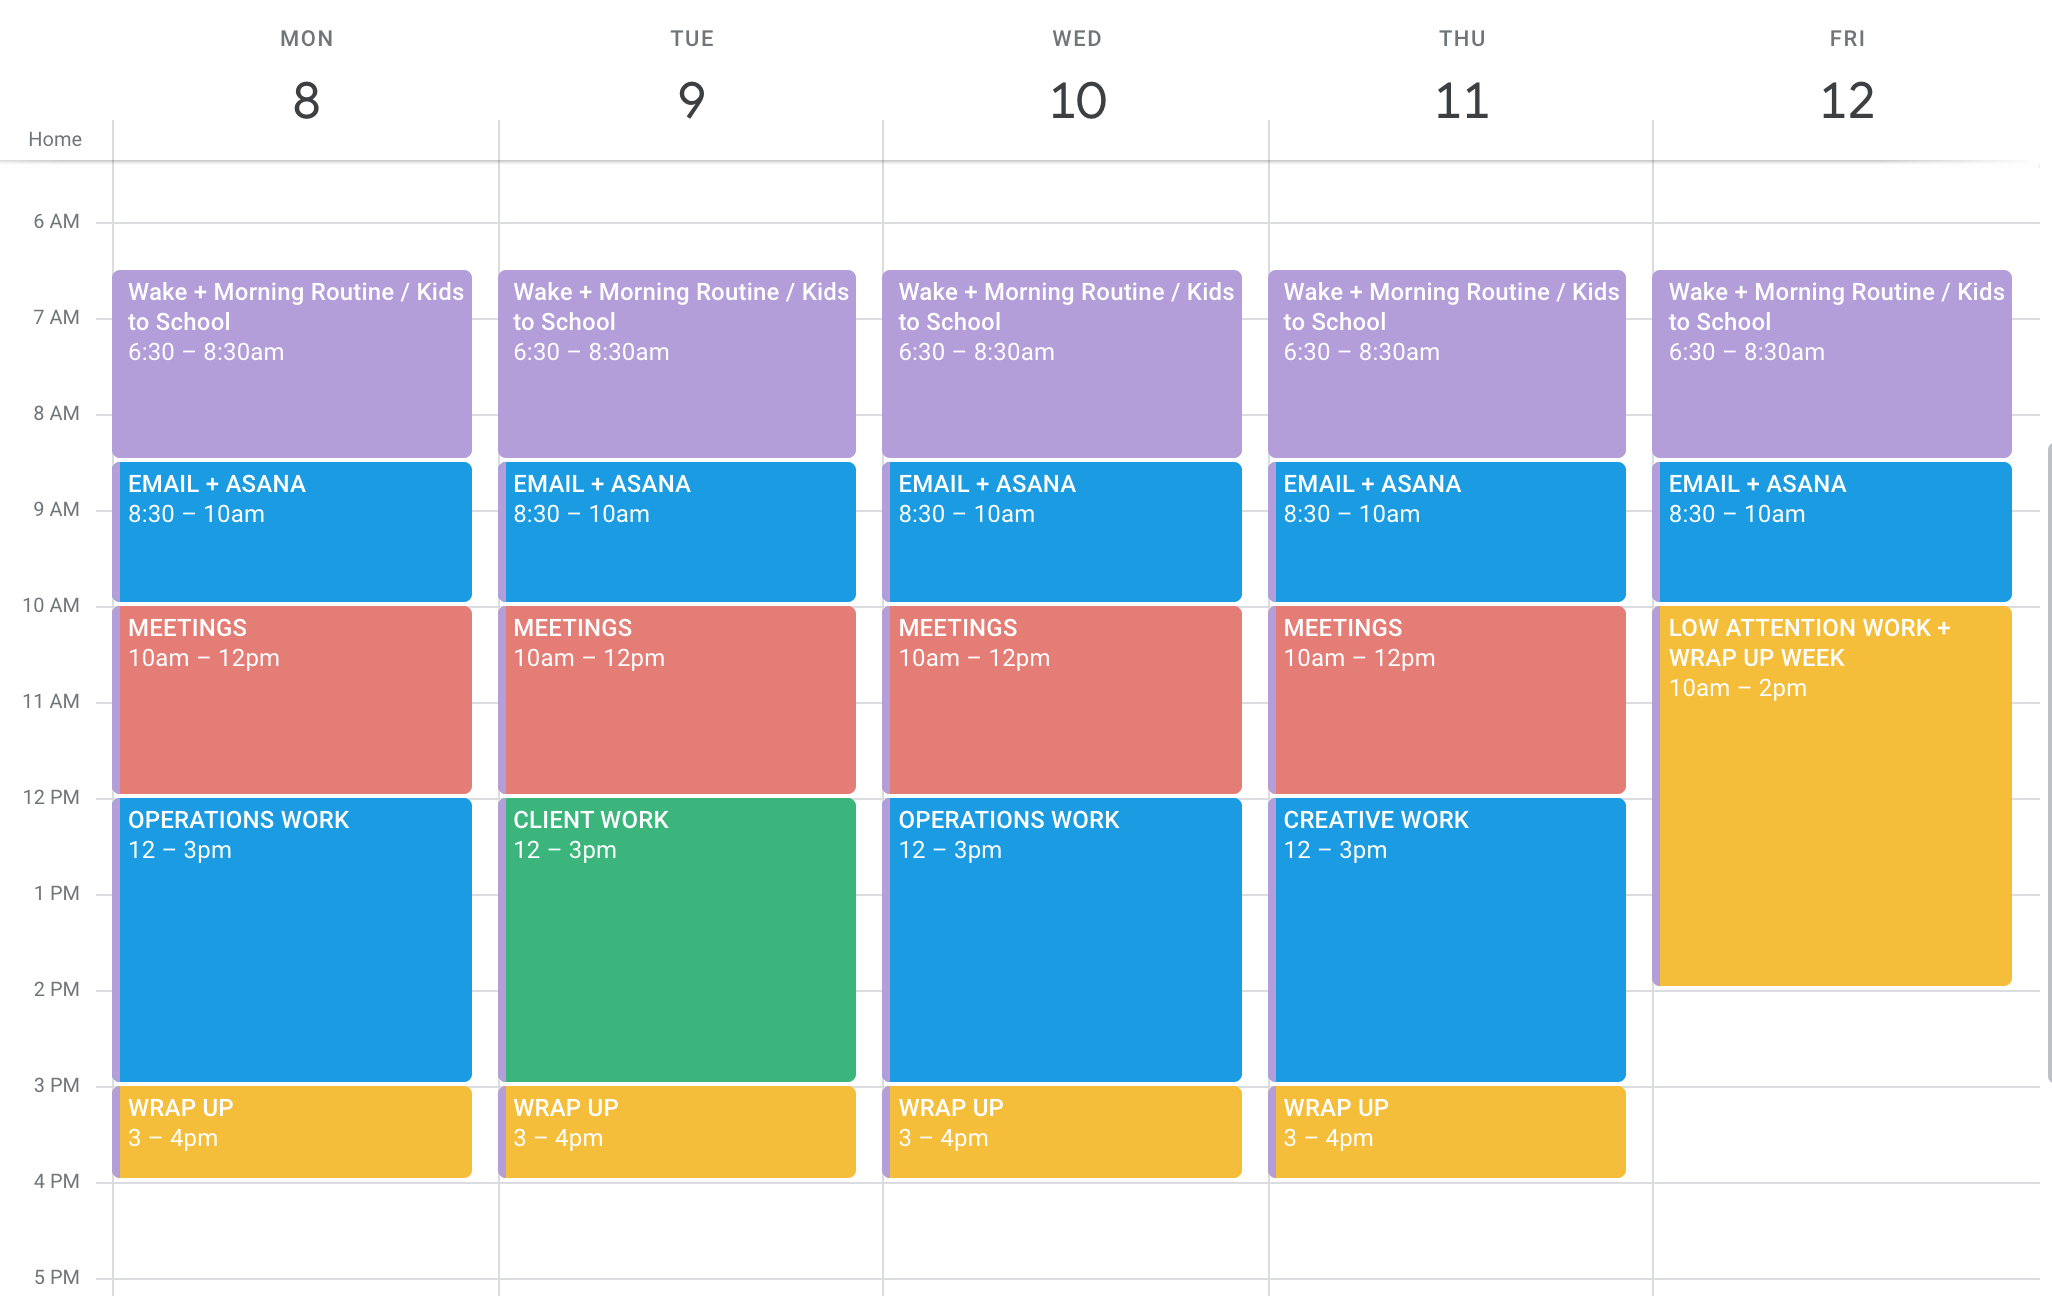 Protecting Time Calendar for an Ideal Work Week